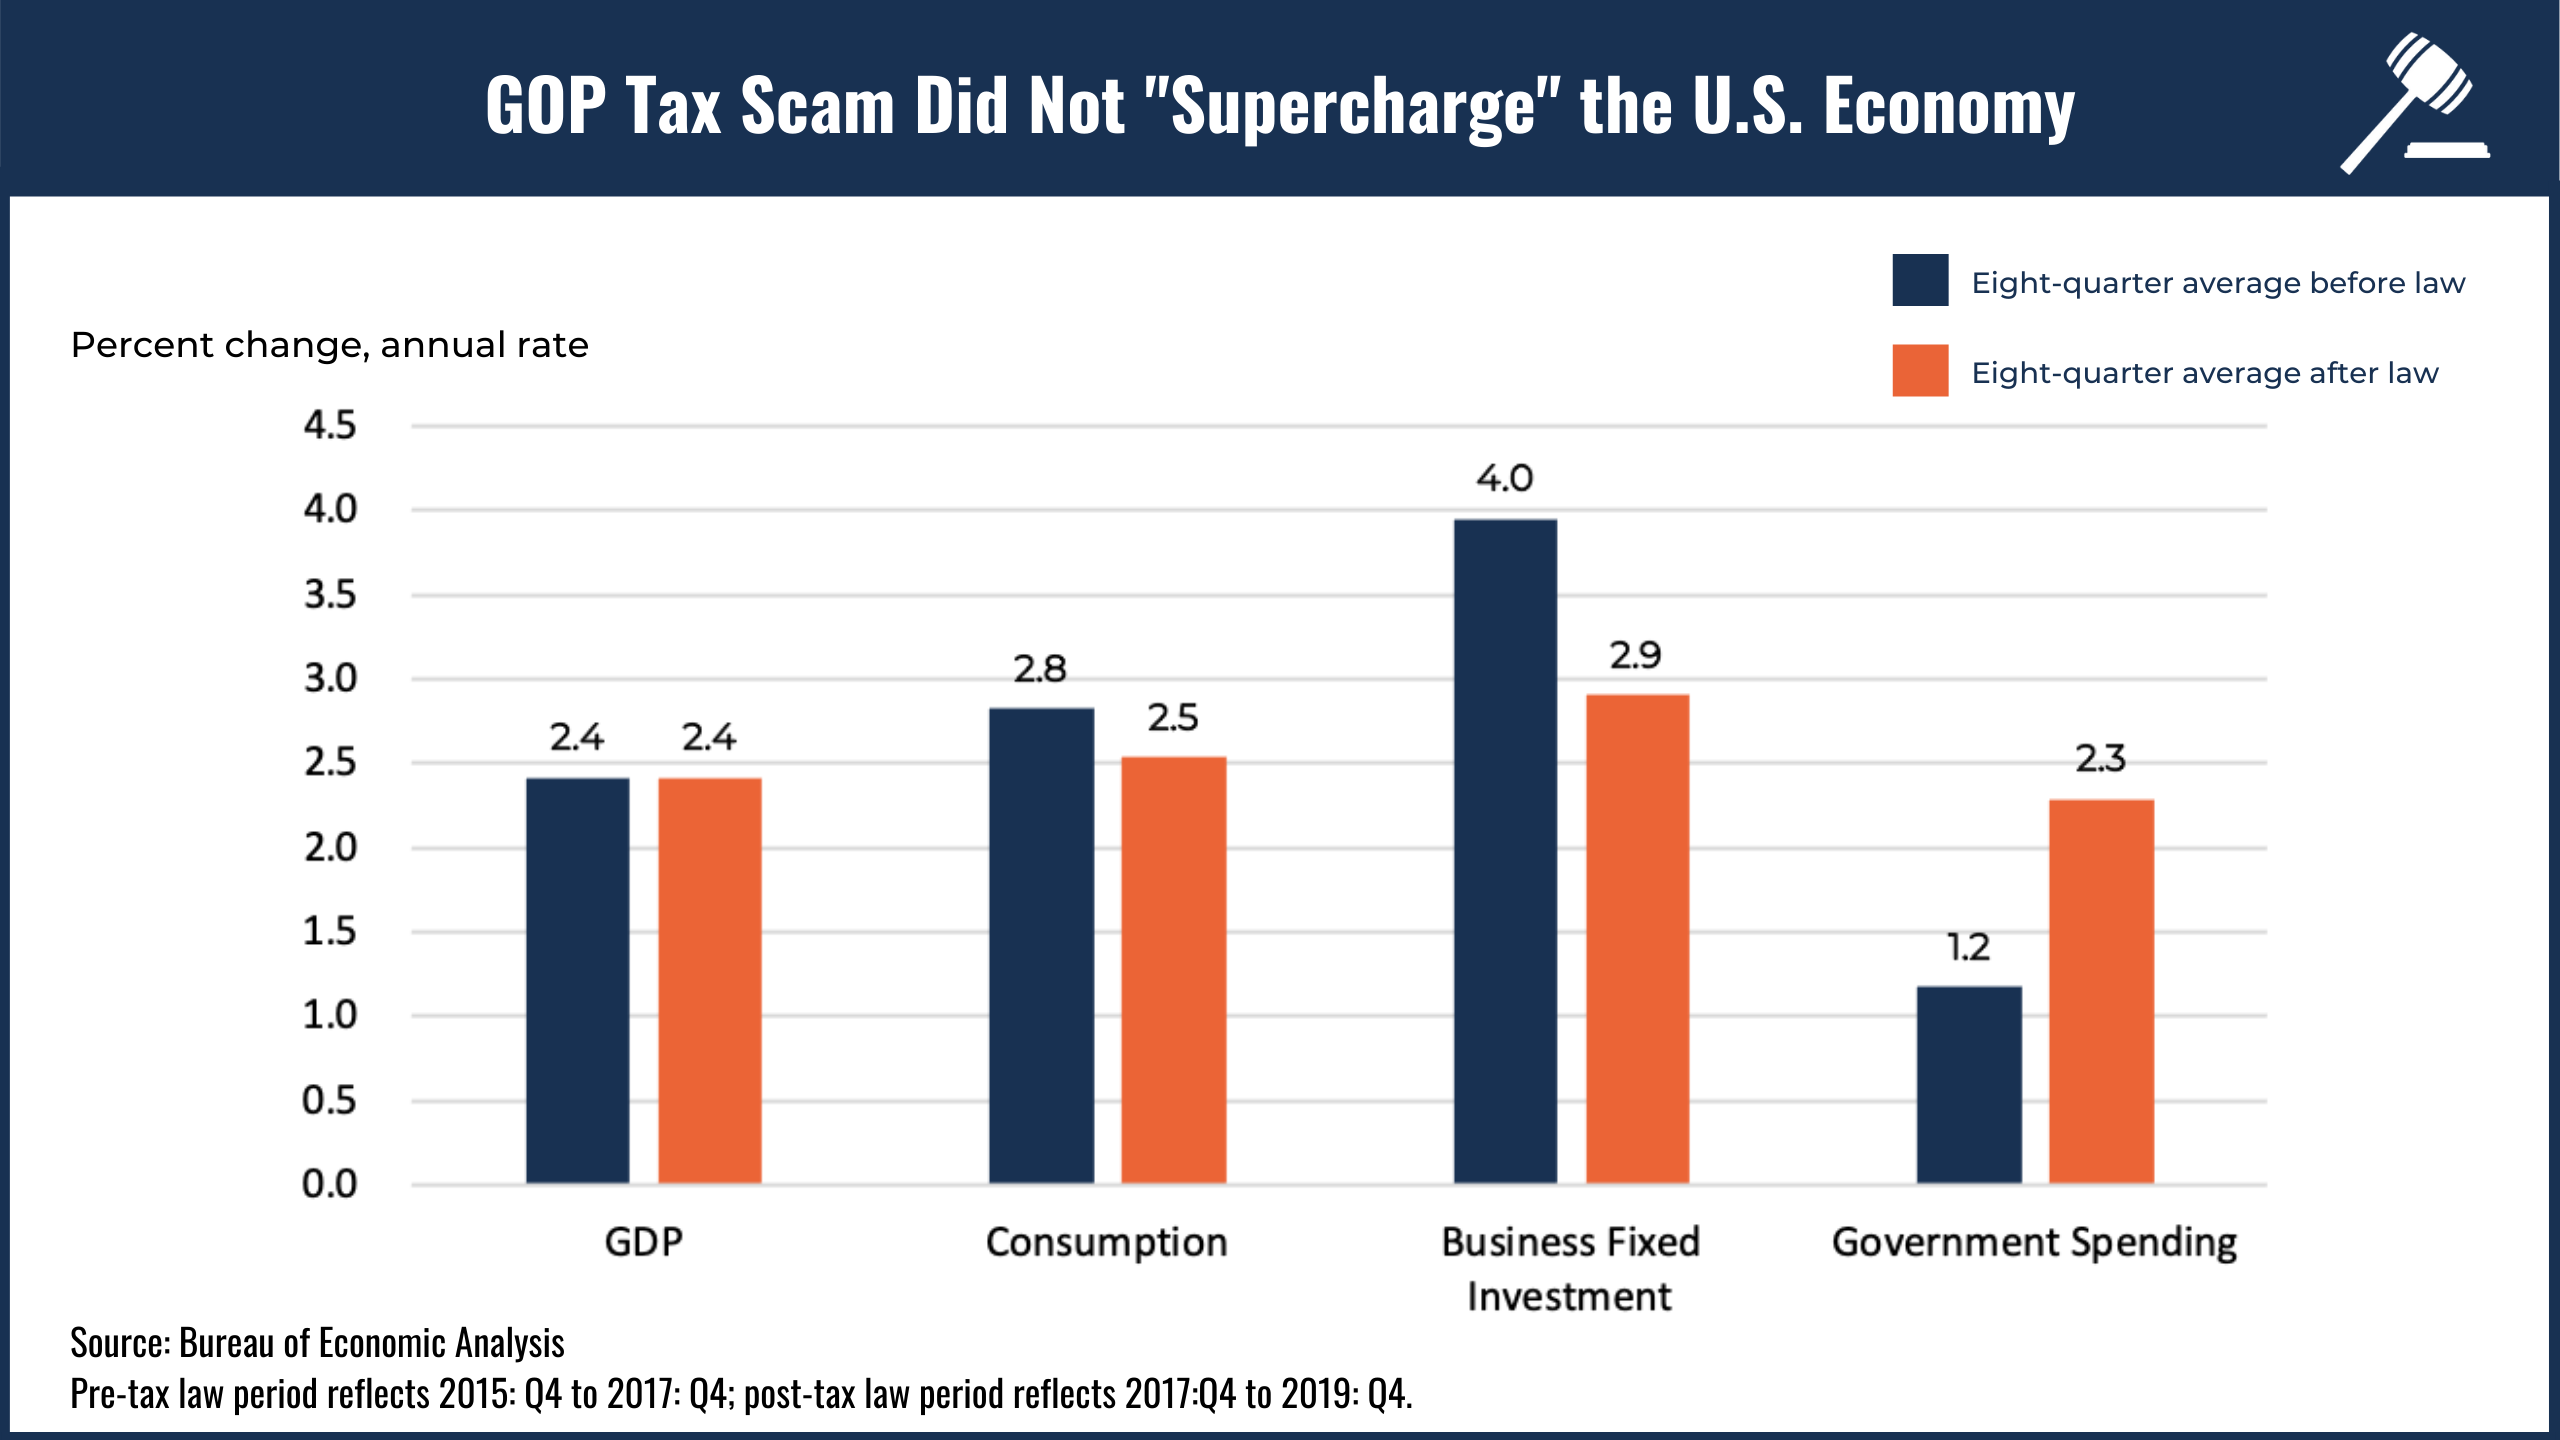 Bar chart showing how the GOP tax scam failed to supercharge the U.S. economy despite Trump's promises